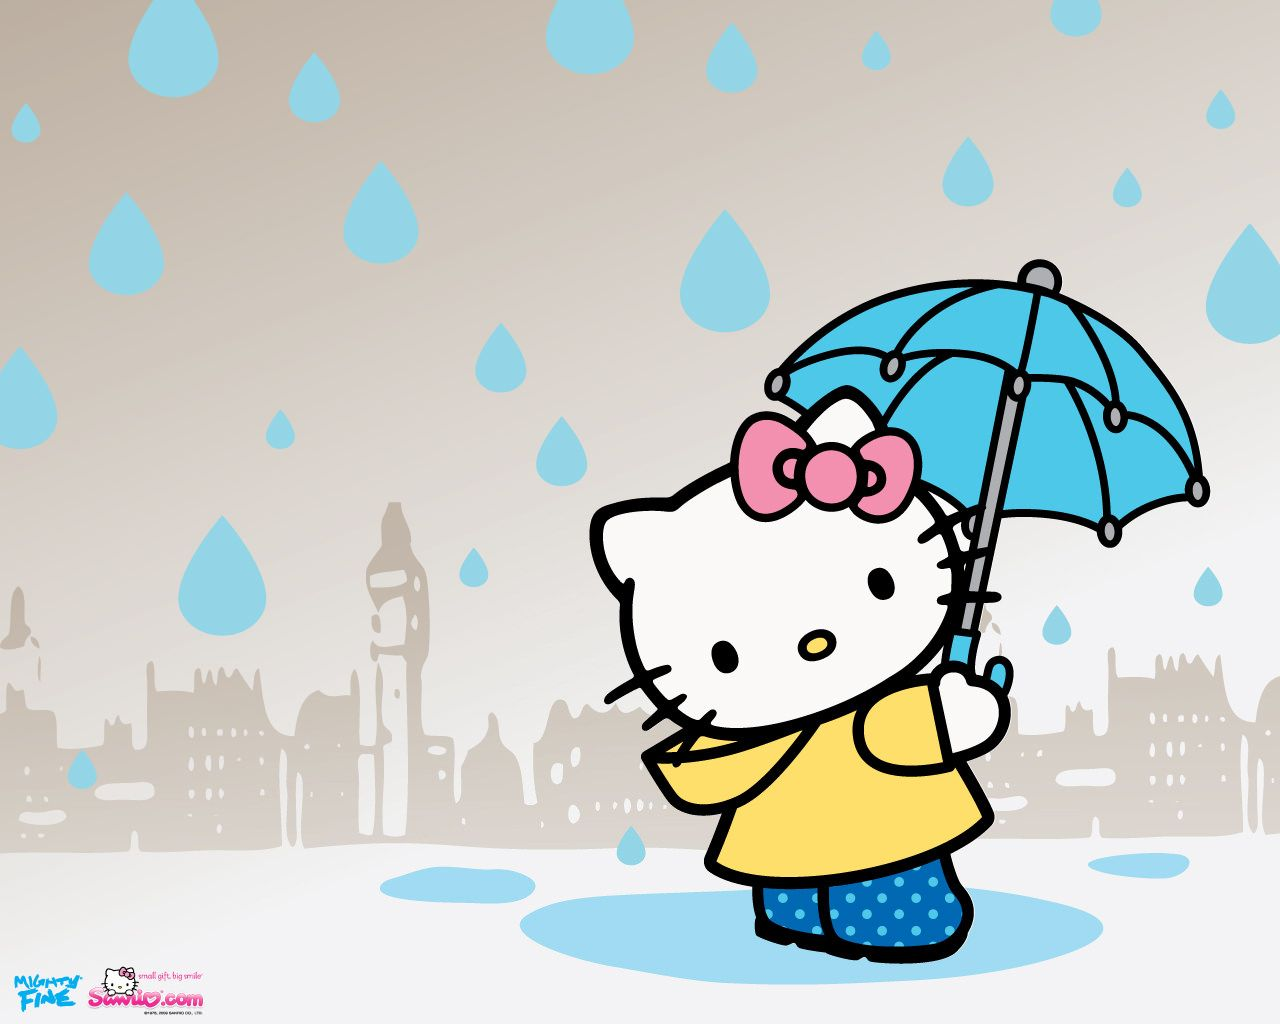 1280x1024 15+ Hello Kitty HD Backgrounds, Wallpapers, Images ...